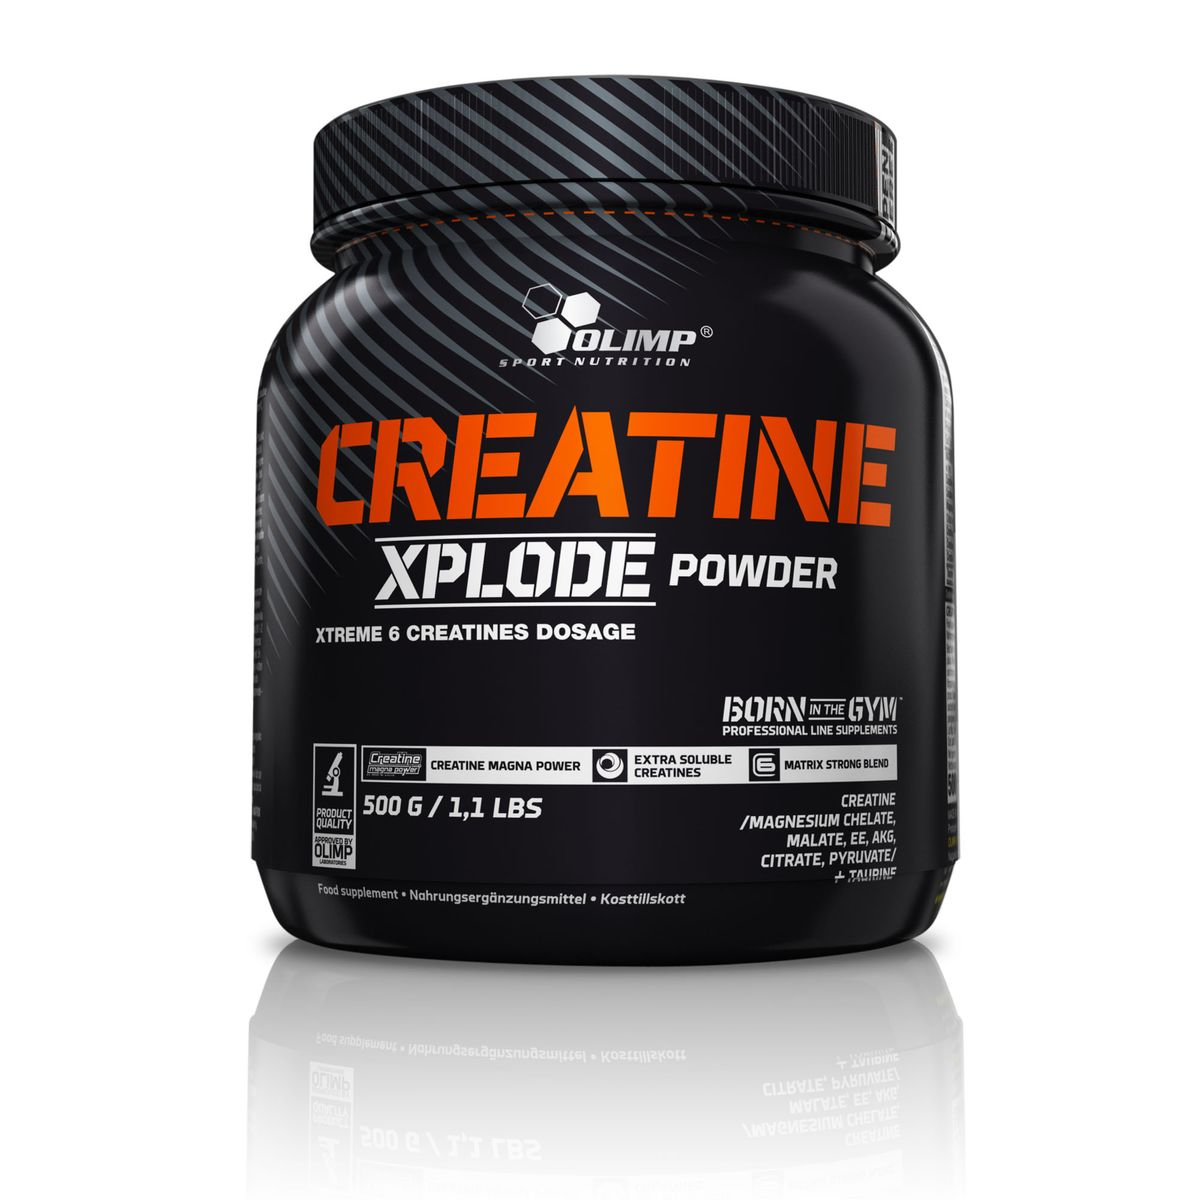 Креатин Olimp Sport Nutrition Xplode Powder, ананас, 500 г креатин моногидрат sport technology nutrition creatine 300 г